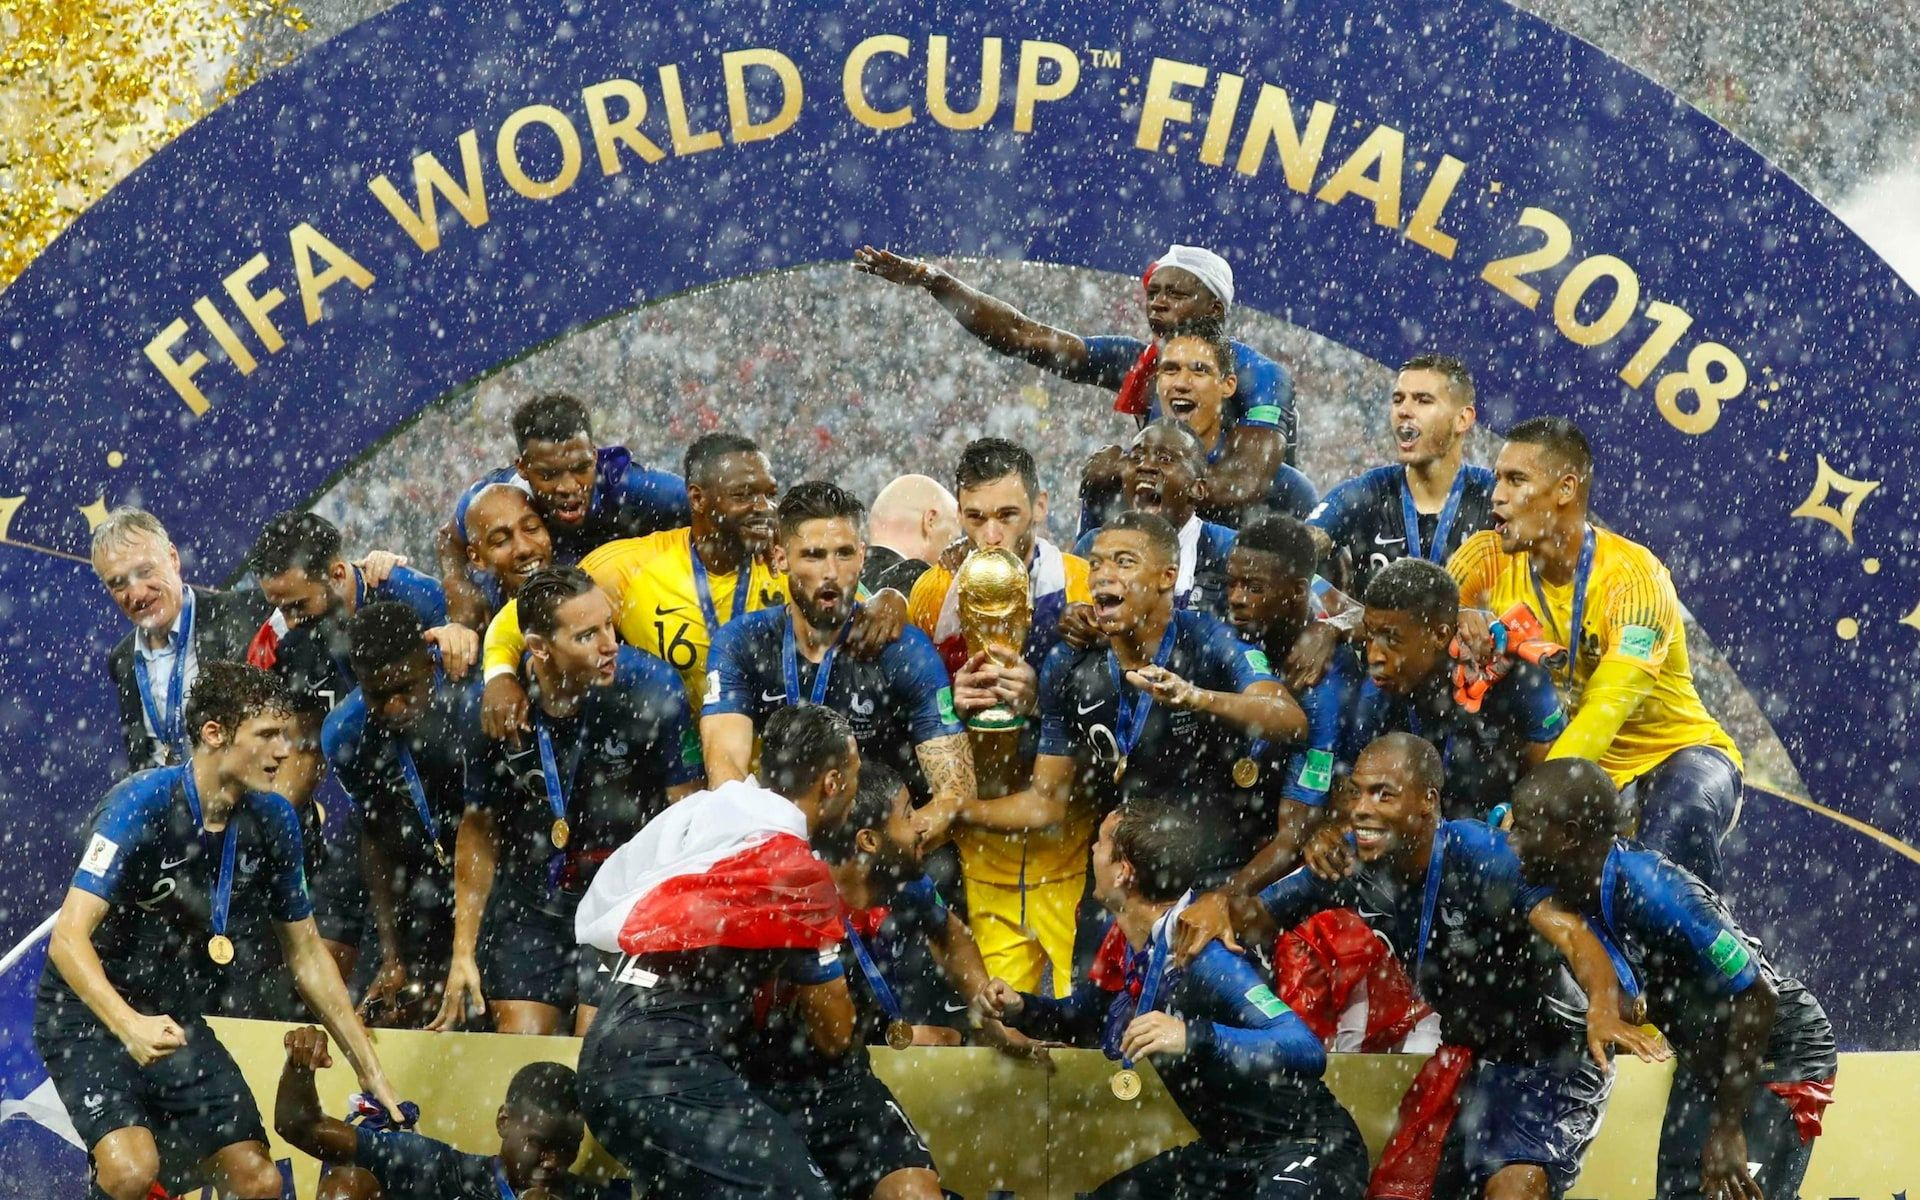 France Win World Cup 2018 Final In Breathless Six Goal Thriller Against Croatia World Cup Final 2018 World Cup Final World Cup